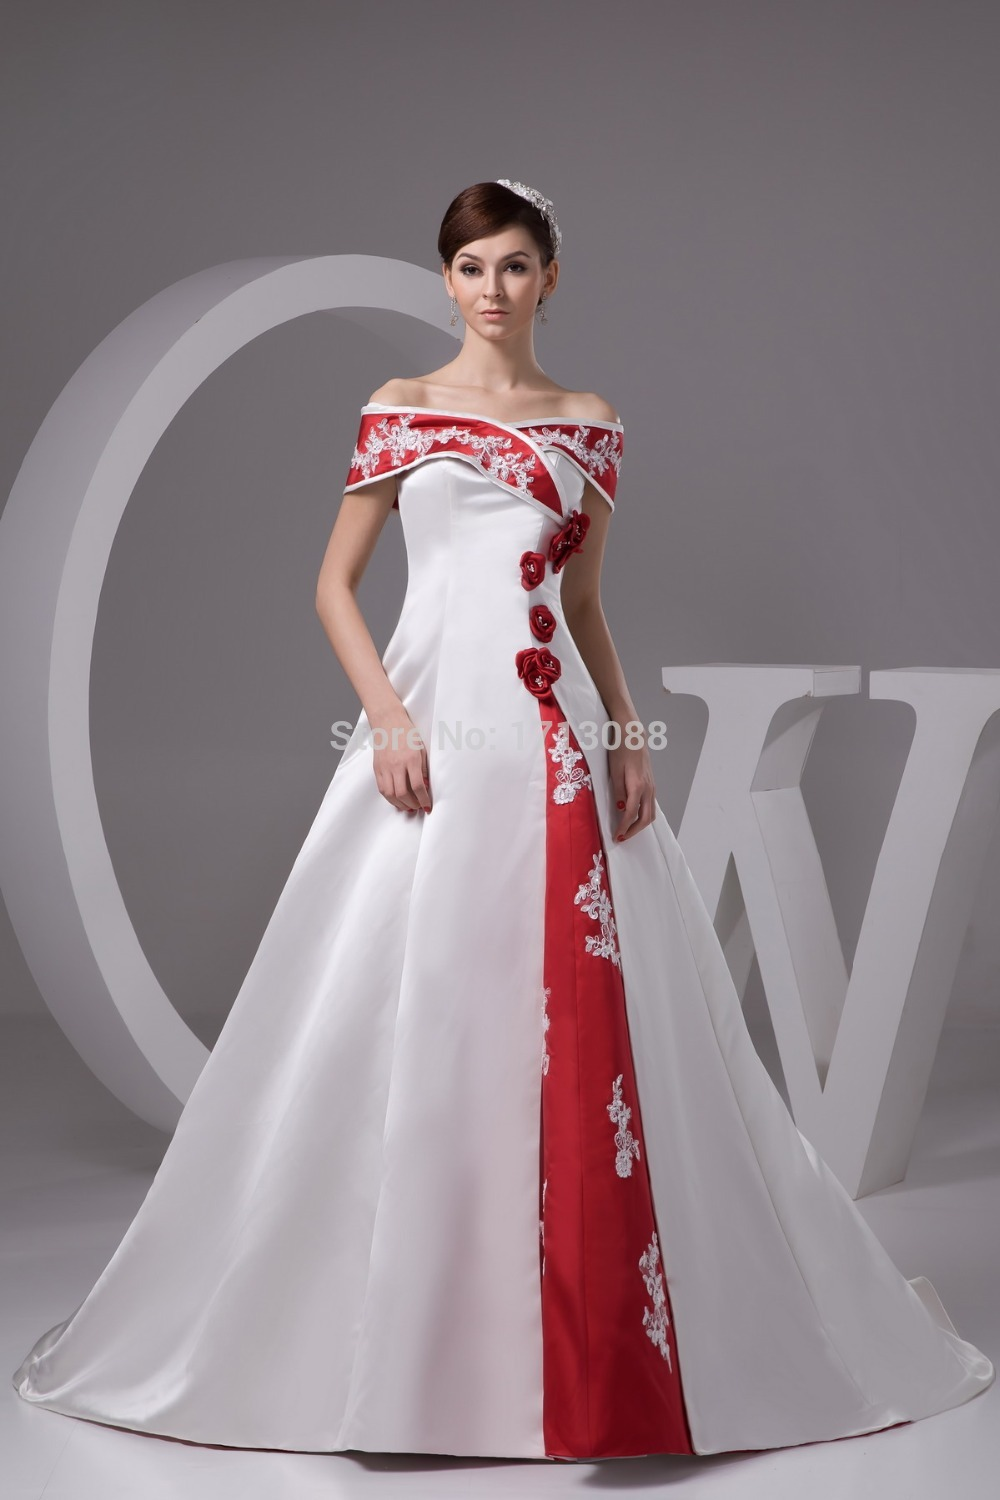 Cheap red and white wedding dresses with floor length for Non traditional wedding dresses plus size